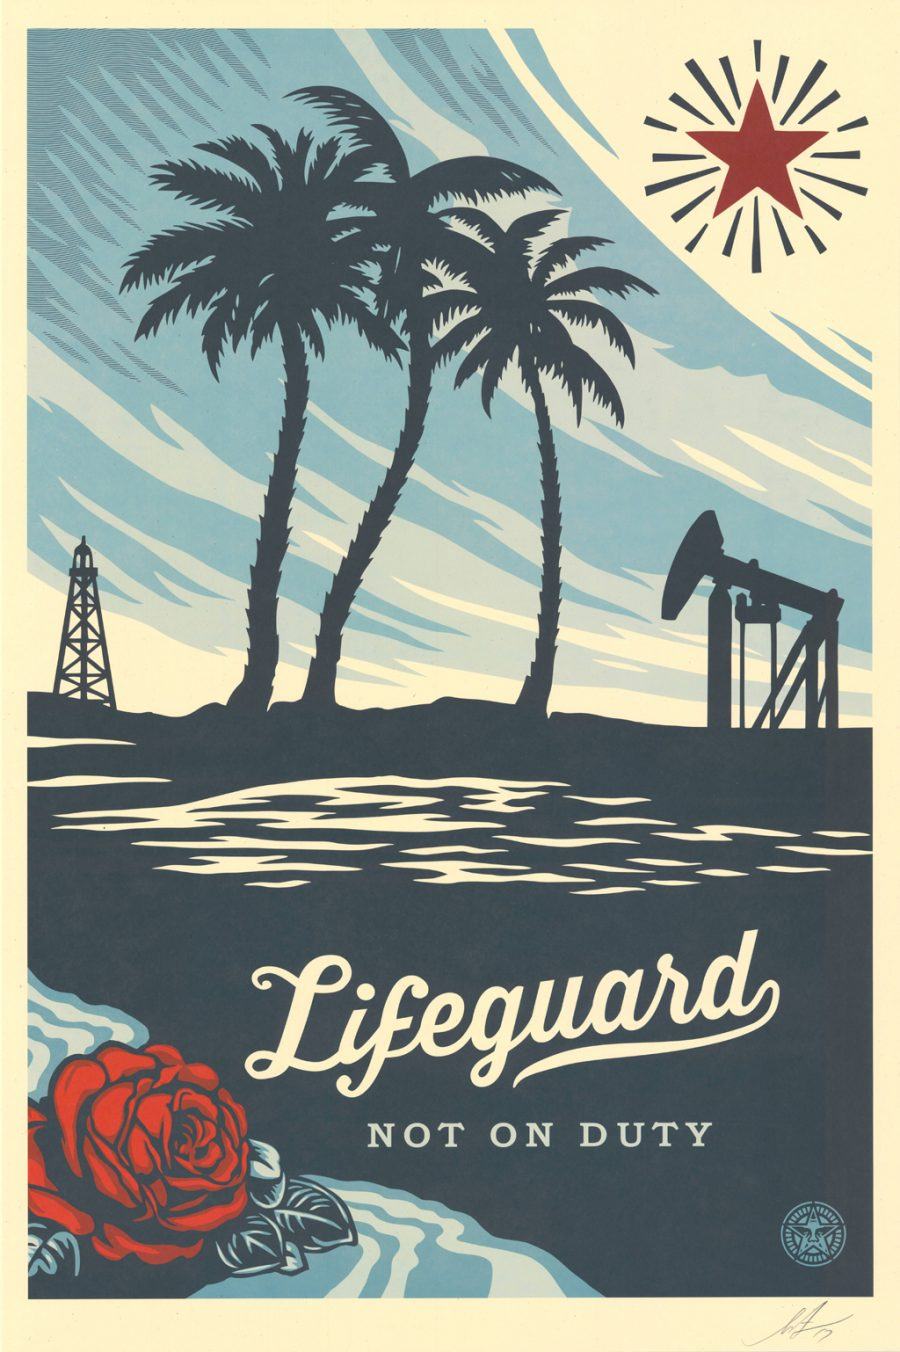 Lifeguard not on duty - Lifeguard not on duty